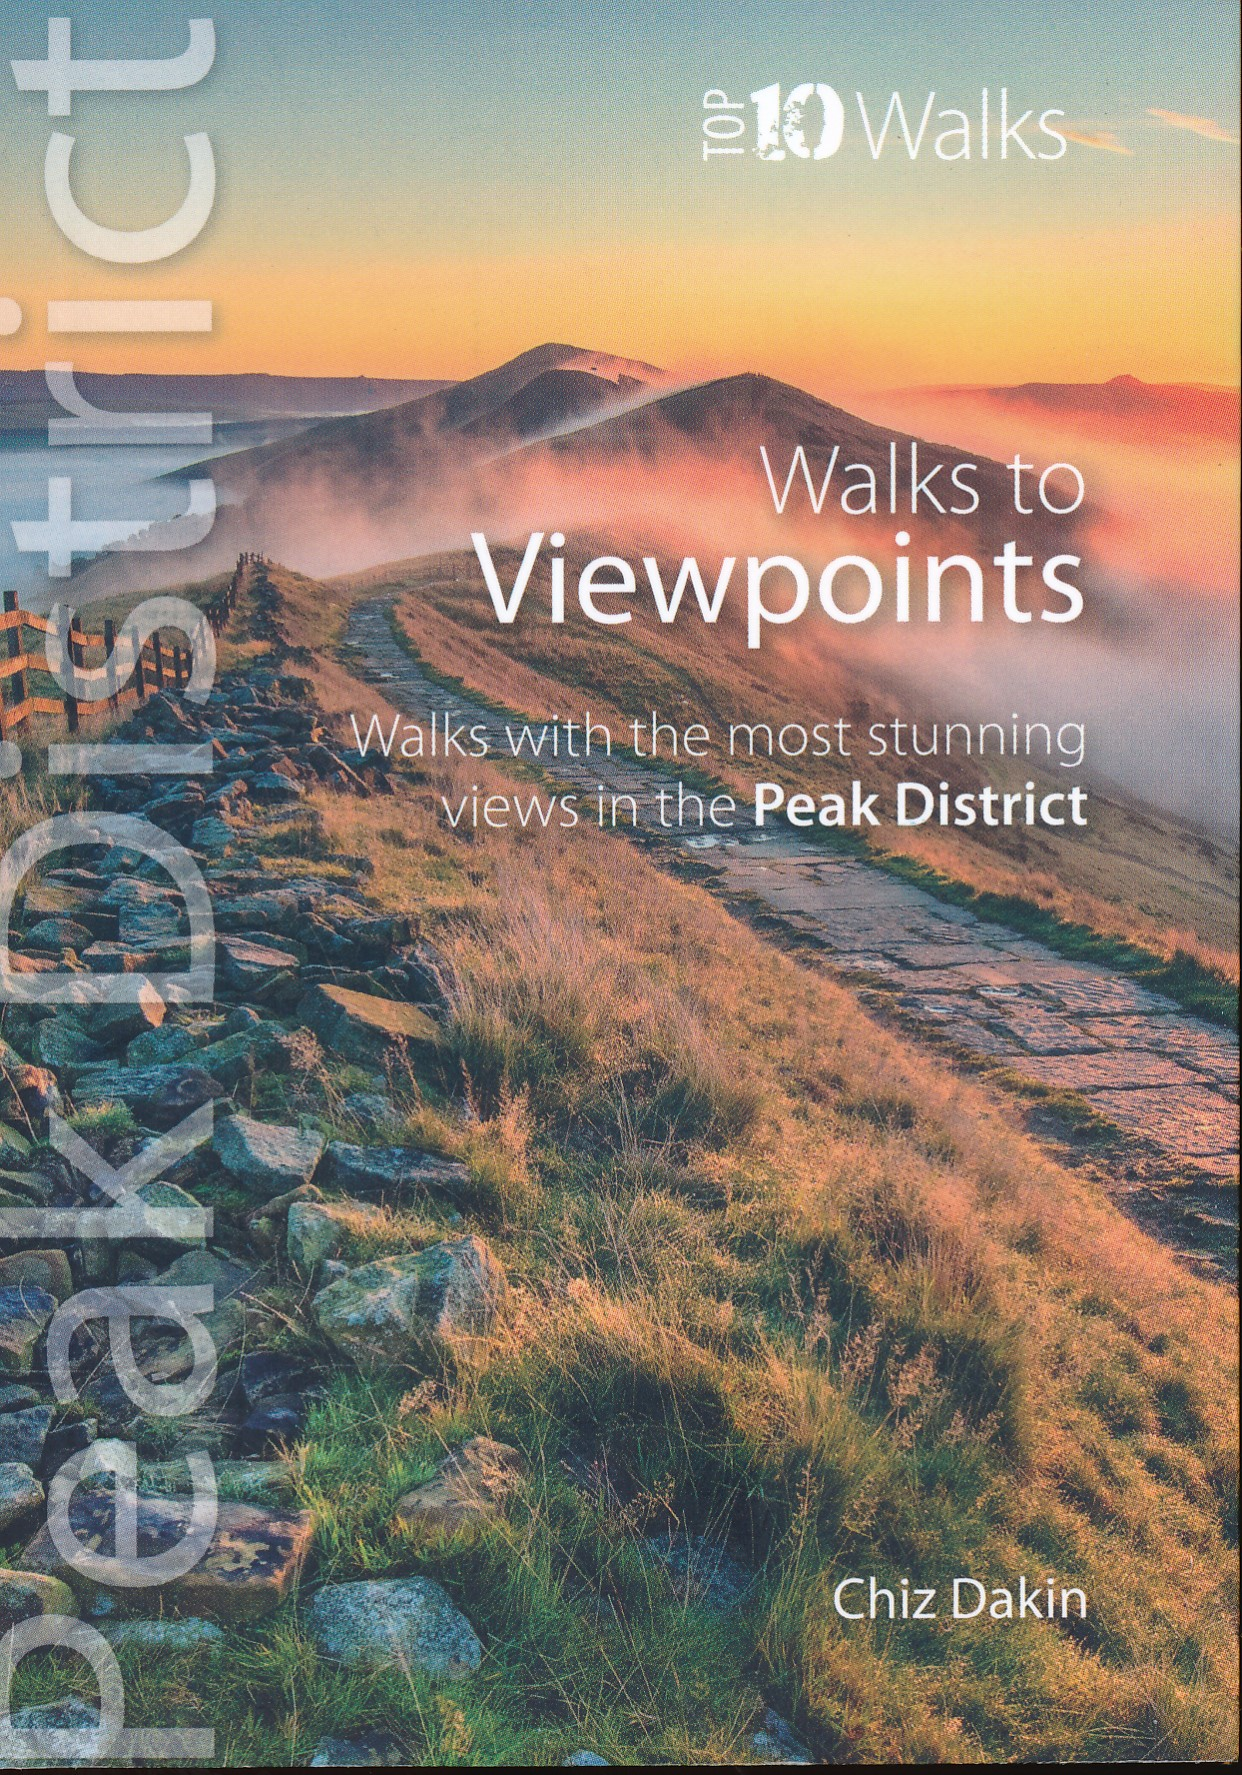 Wandelgids Peak District: Walks to Viewpoints | Northern Eye Books